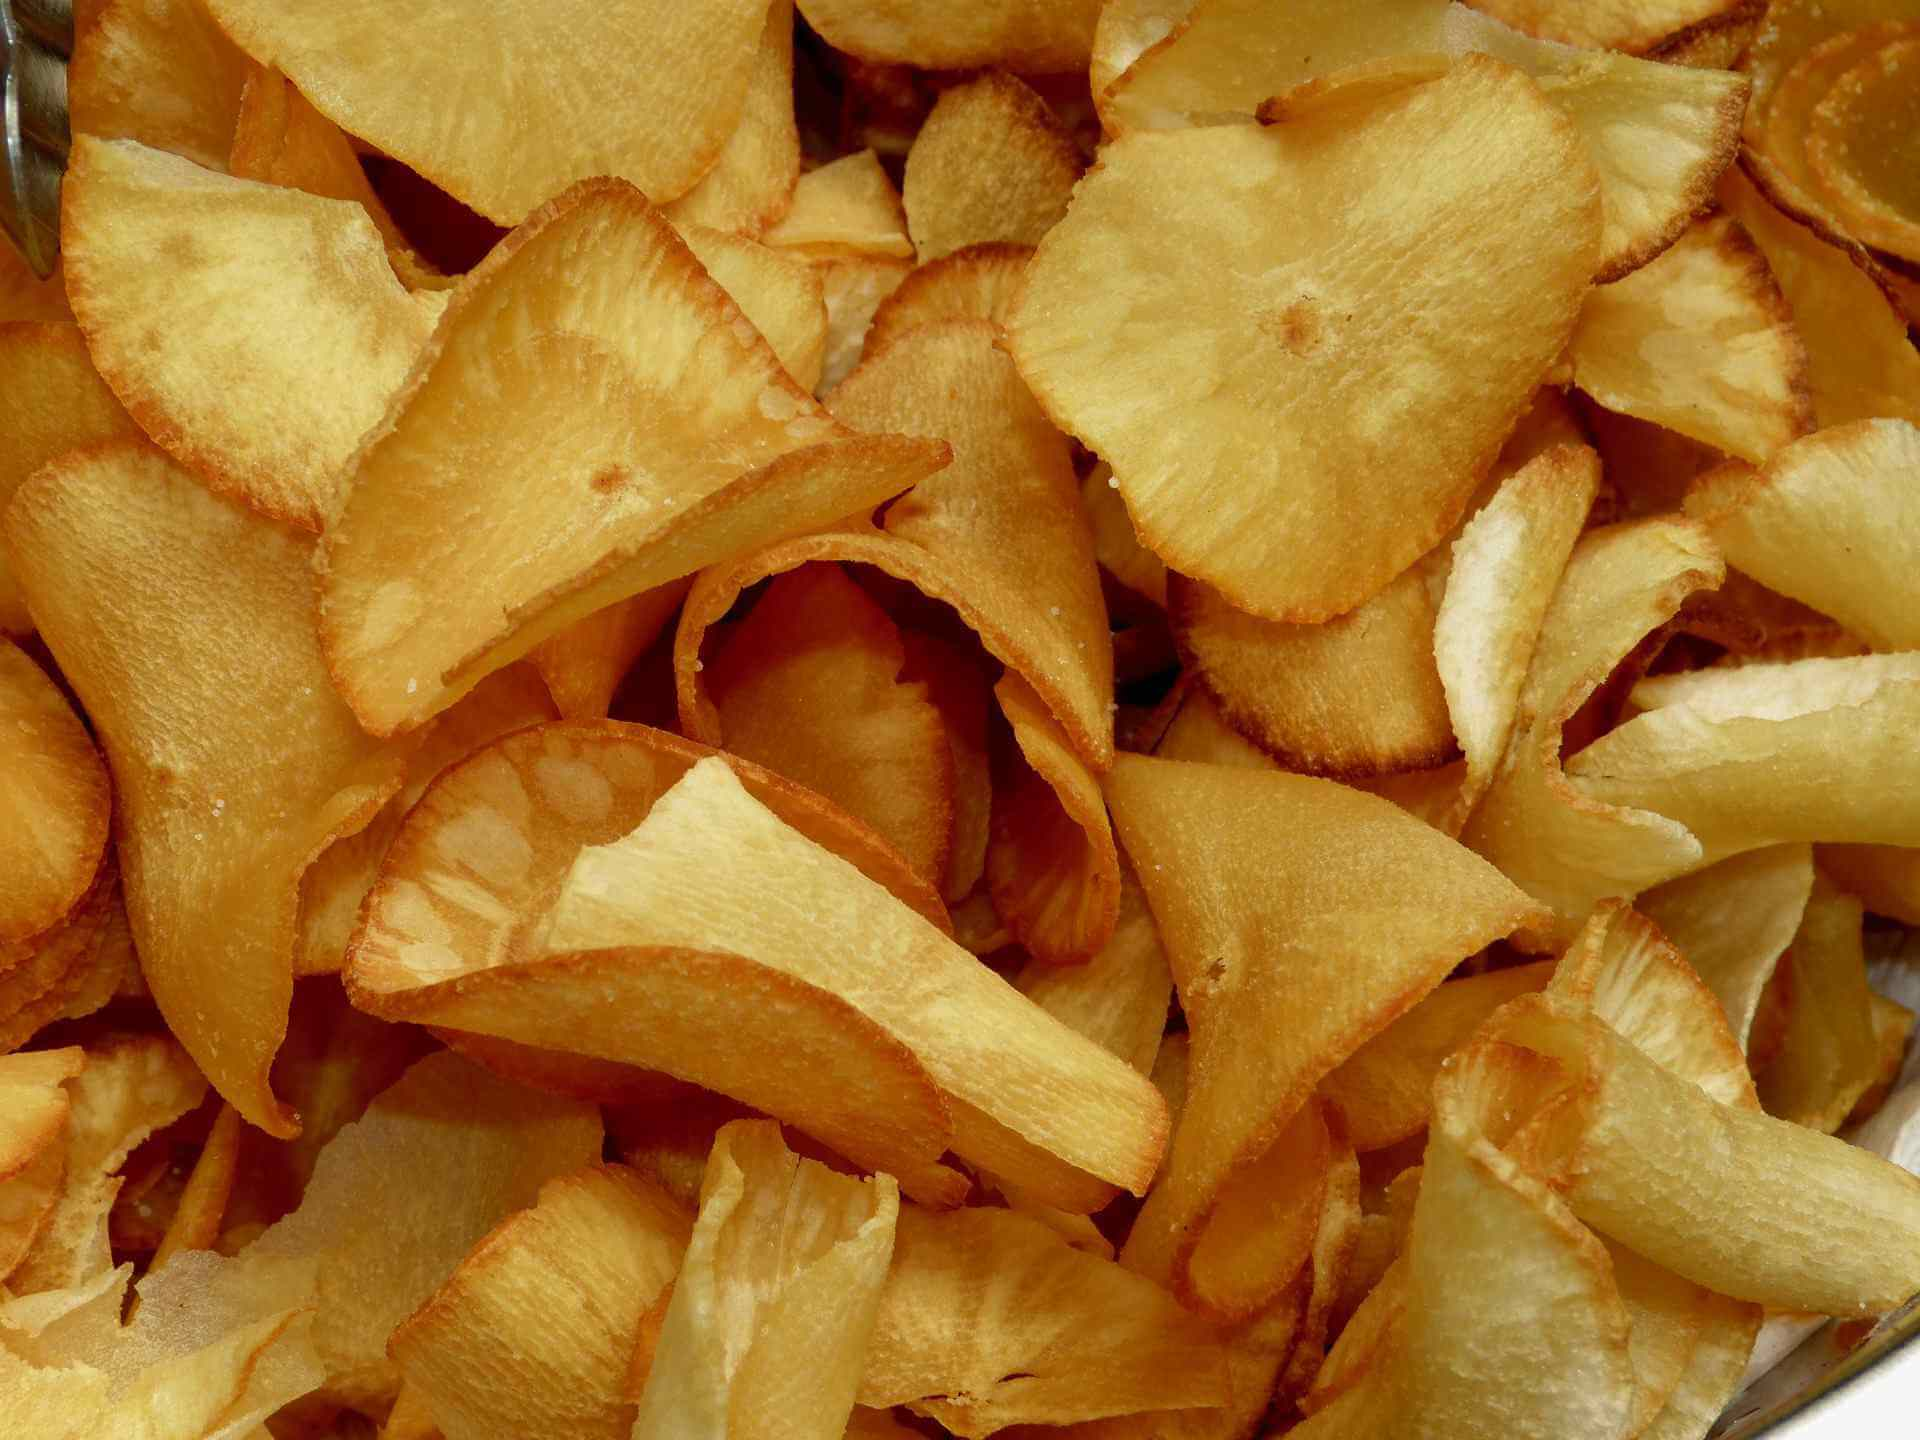 yucca-fries-chips-crisps-yuca-healthy-superfood-ronas-deli